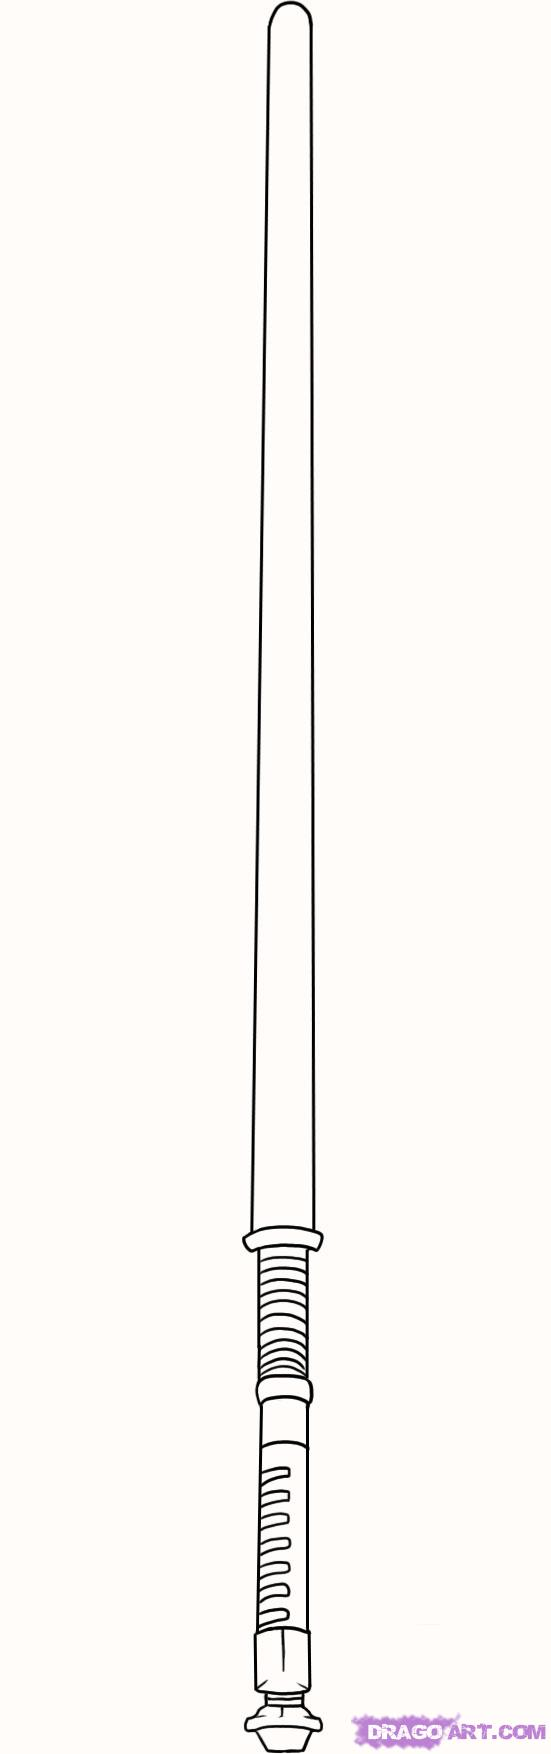 Drawn star wars lightsaber To by Draw Step a